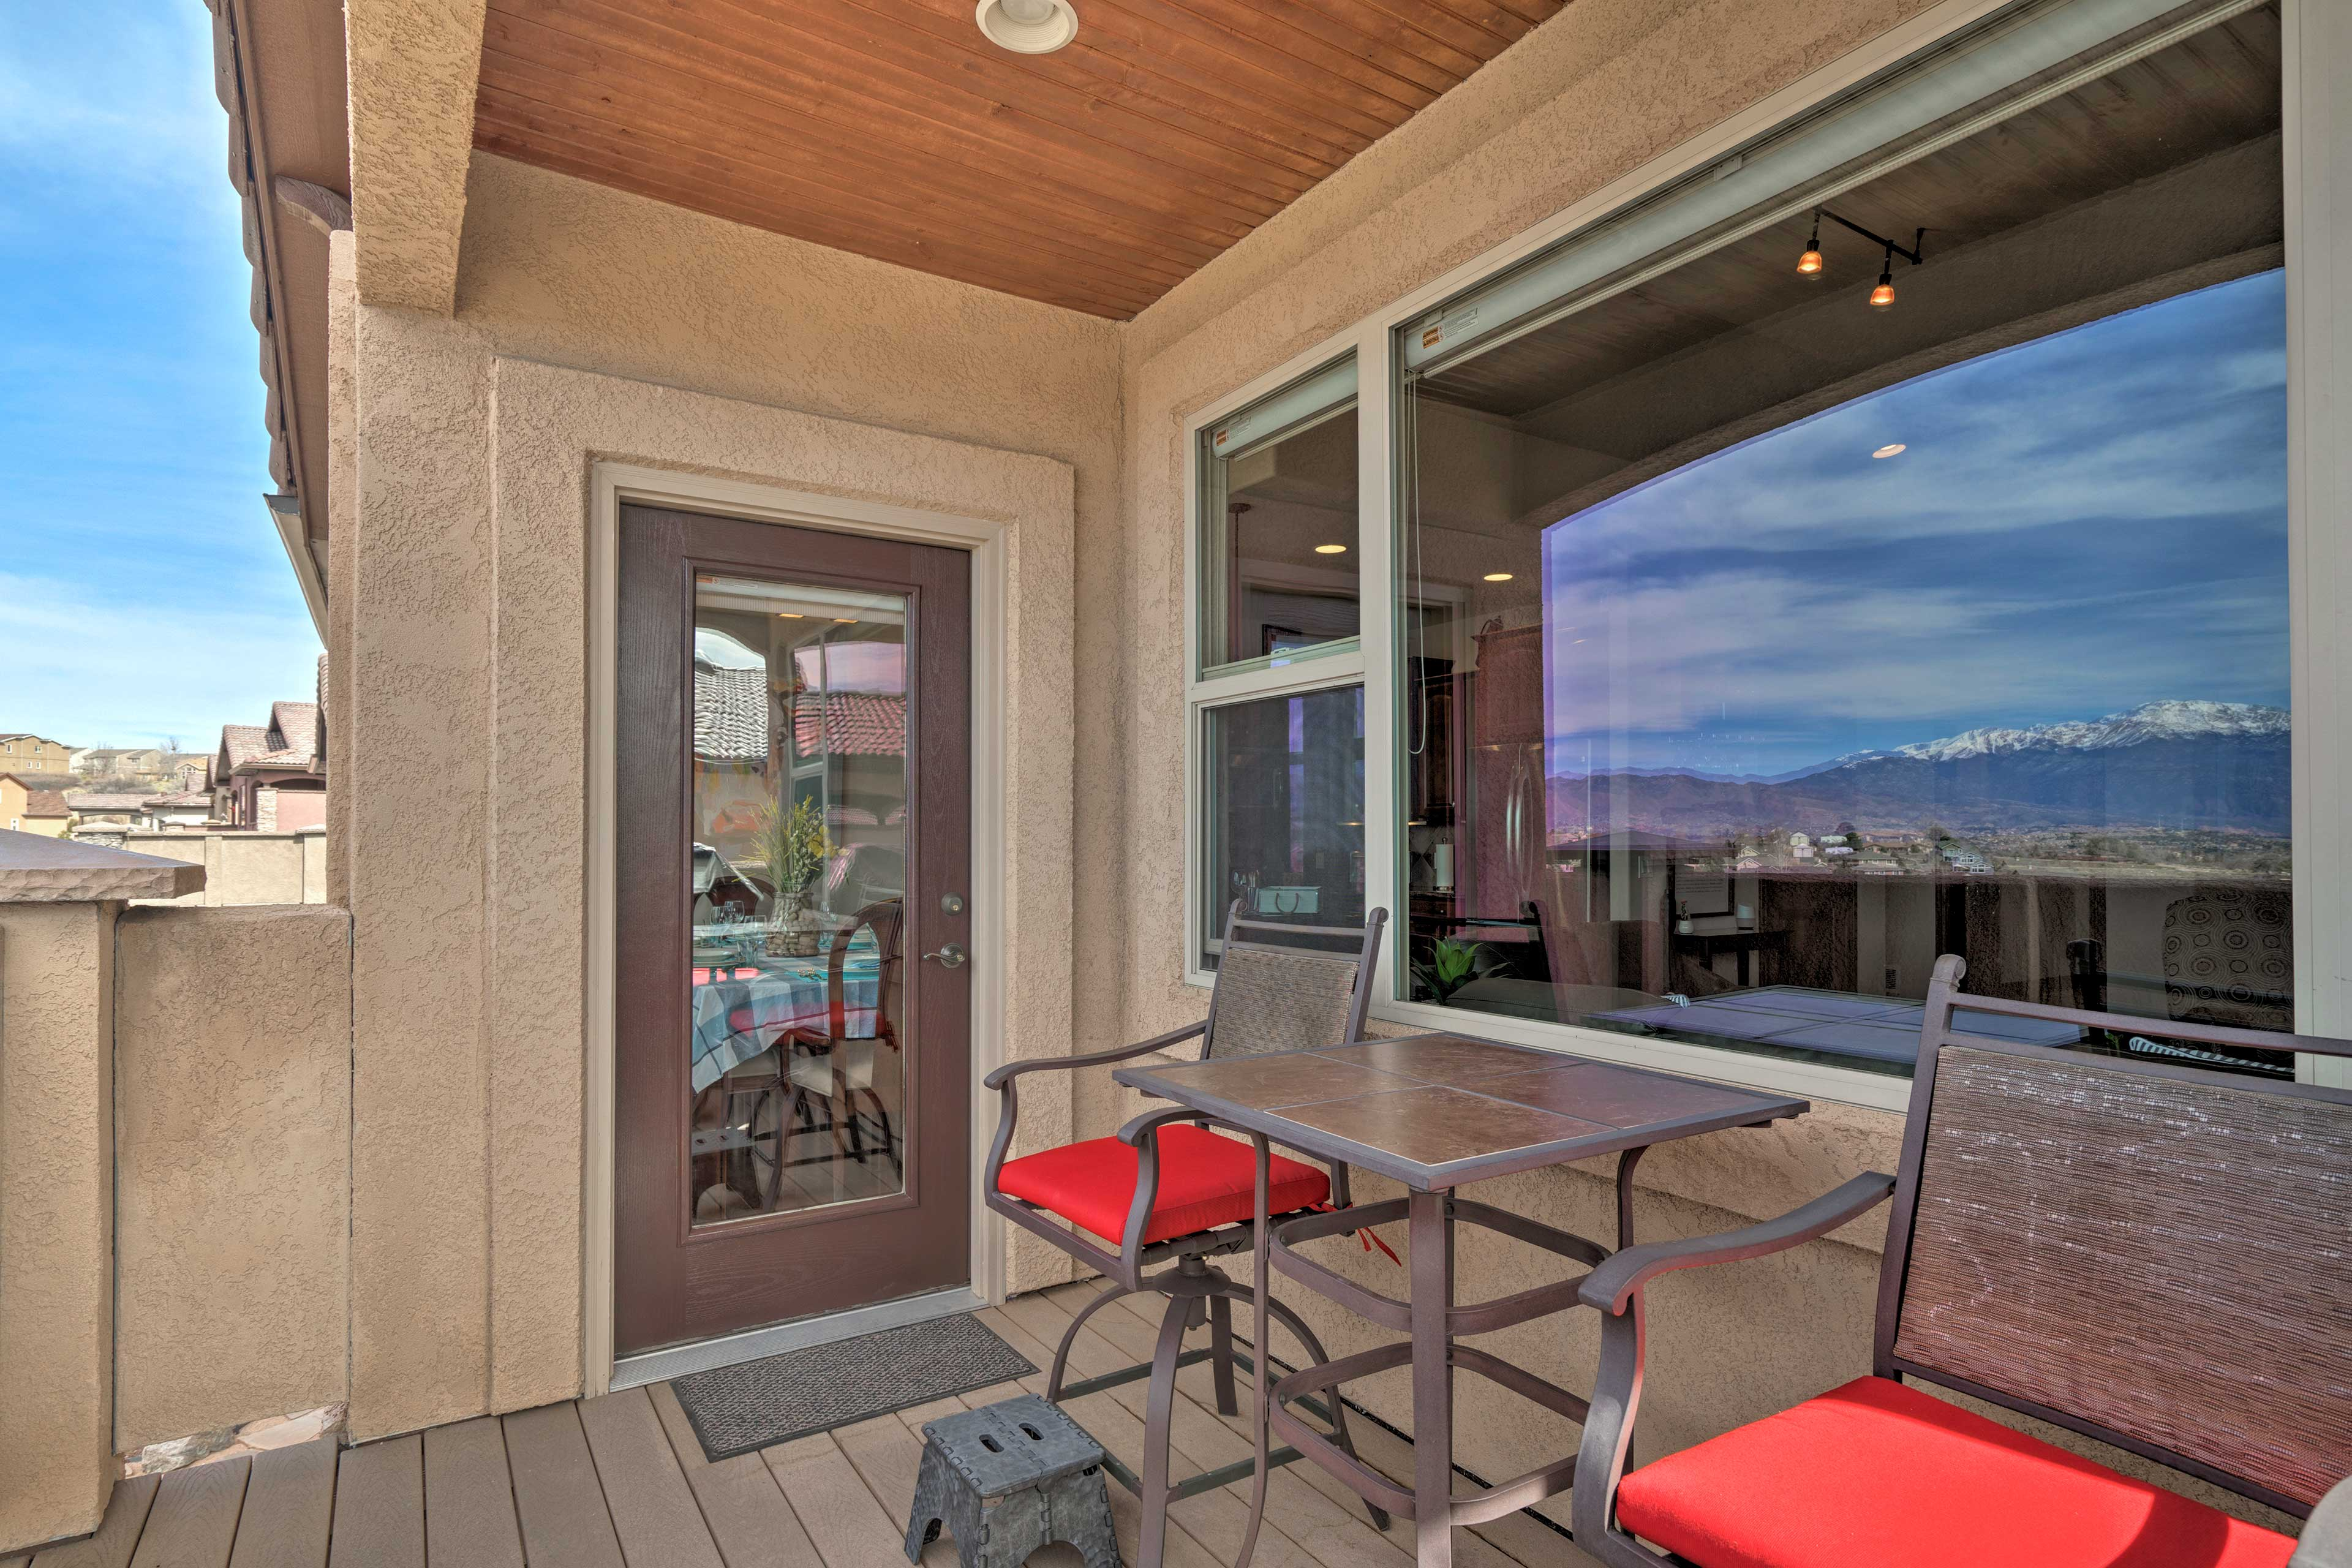 Upstairs, a mountain-view patio sits right off the kitchen and dining area.